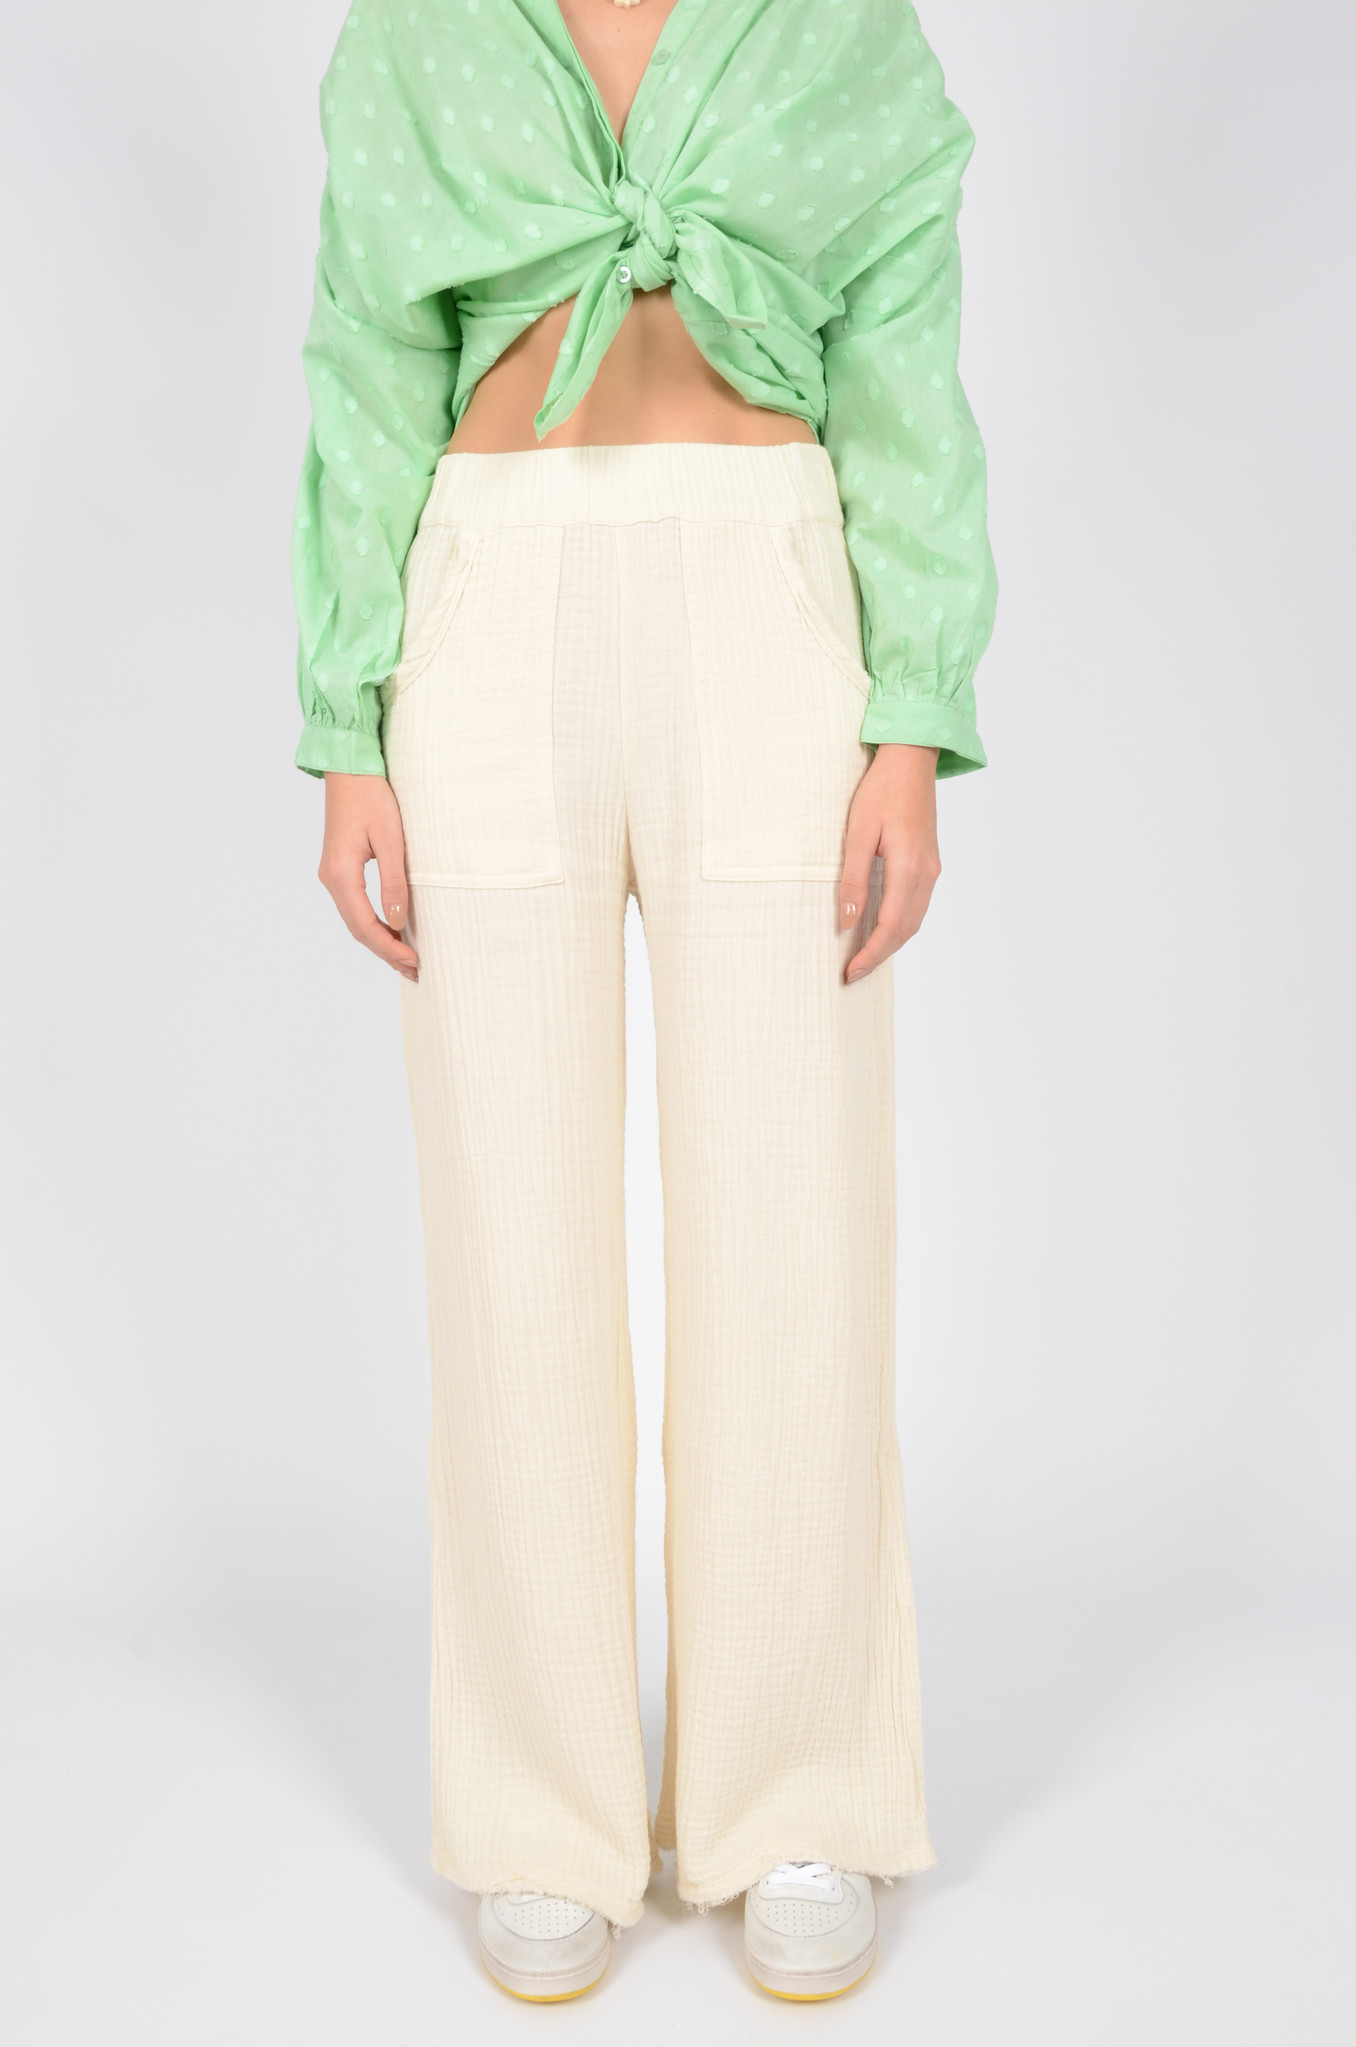 DATAI PANTS  IN BUTTER-2